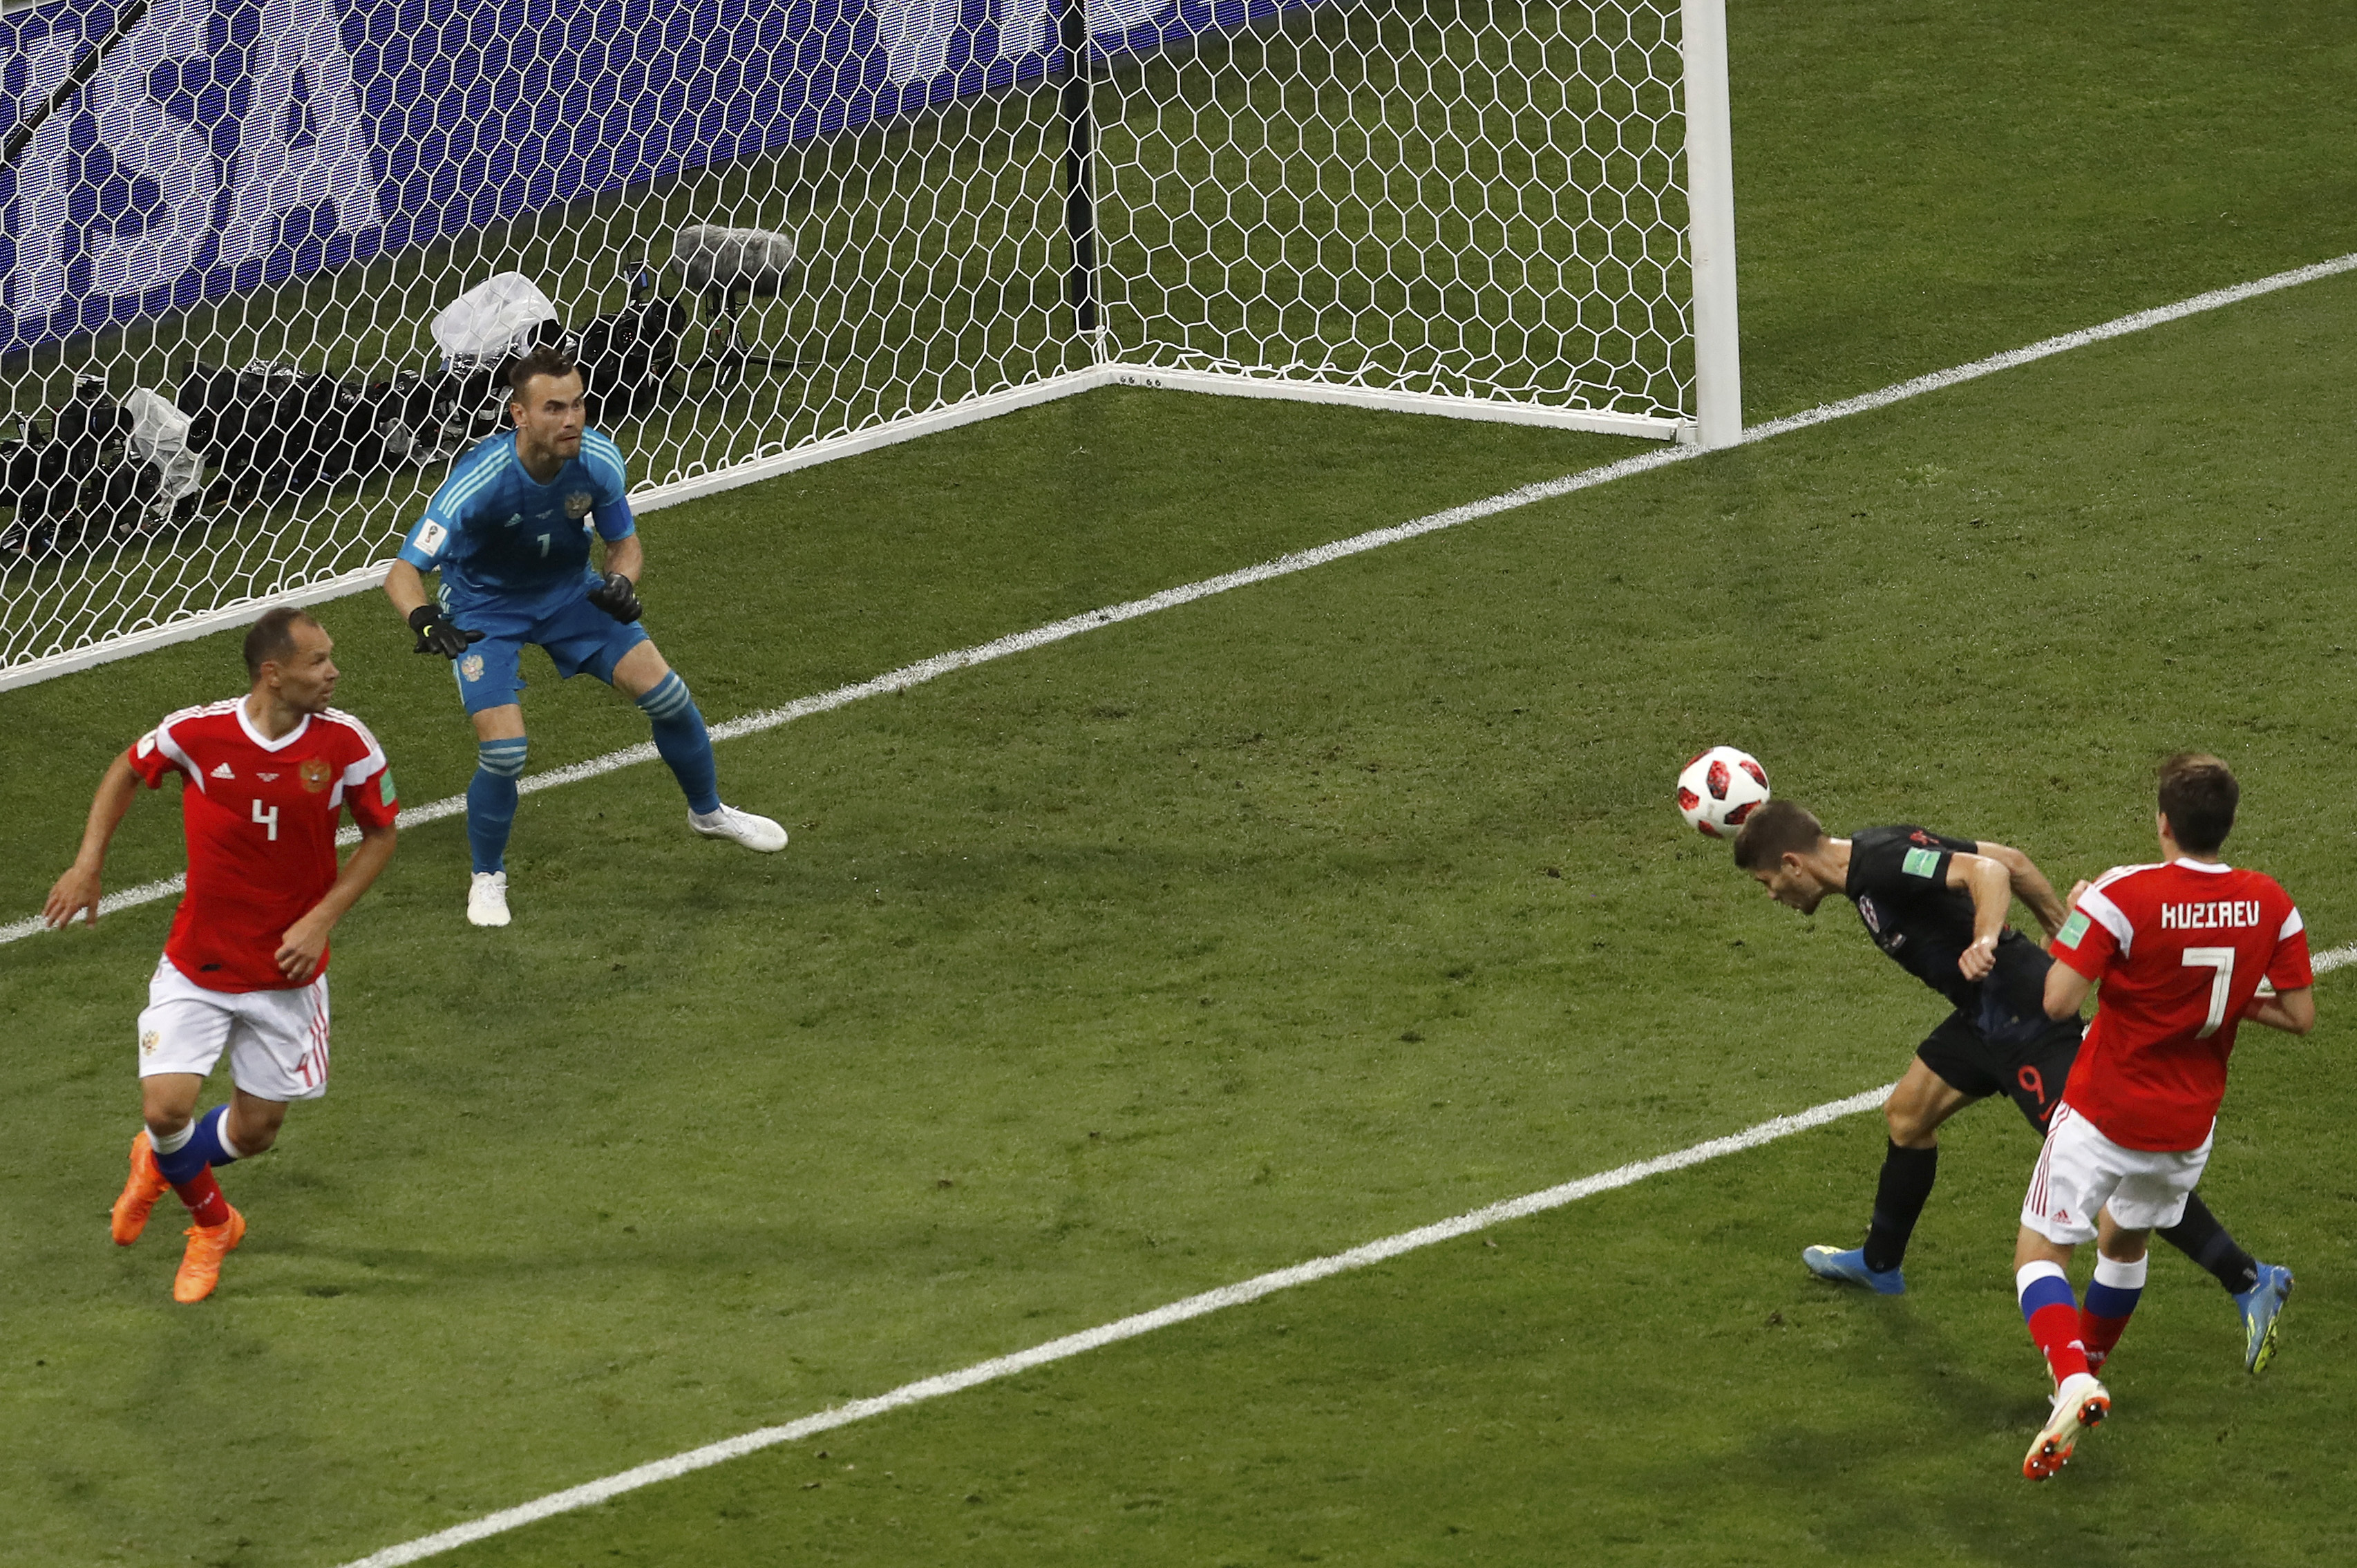 Andrej Kramarić's goal against World Cup hosts, Russia. Credit: PA